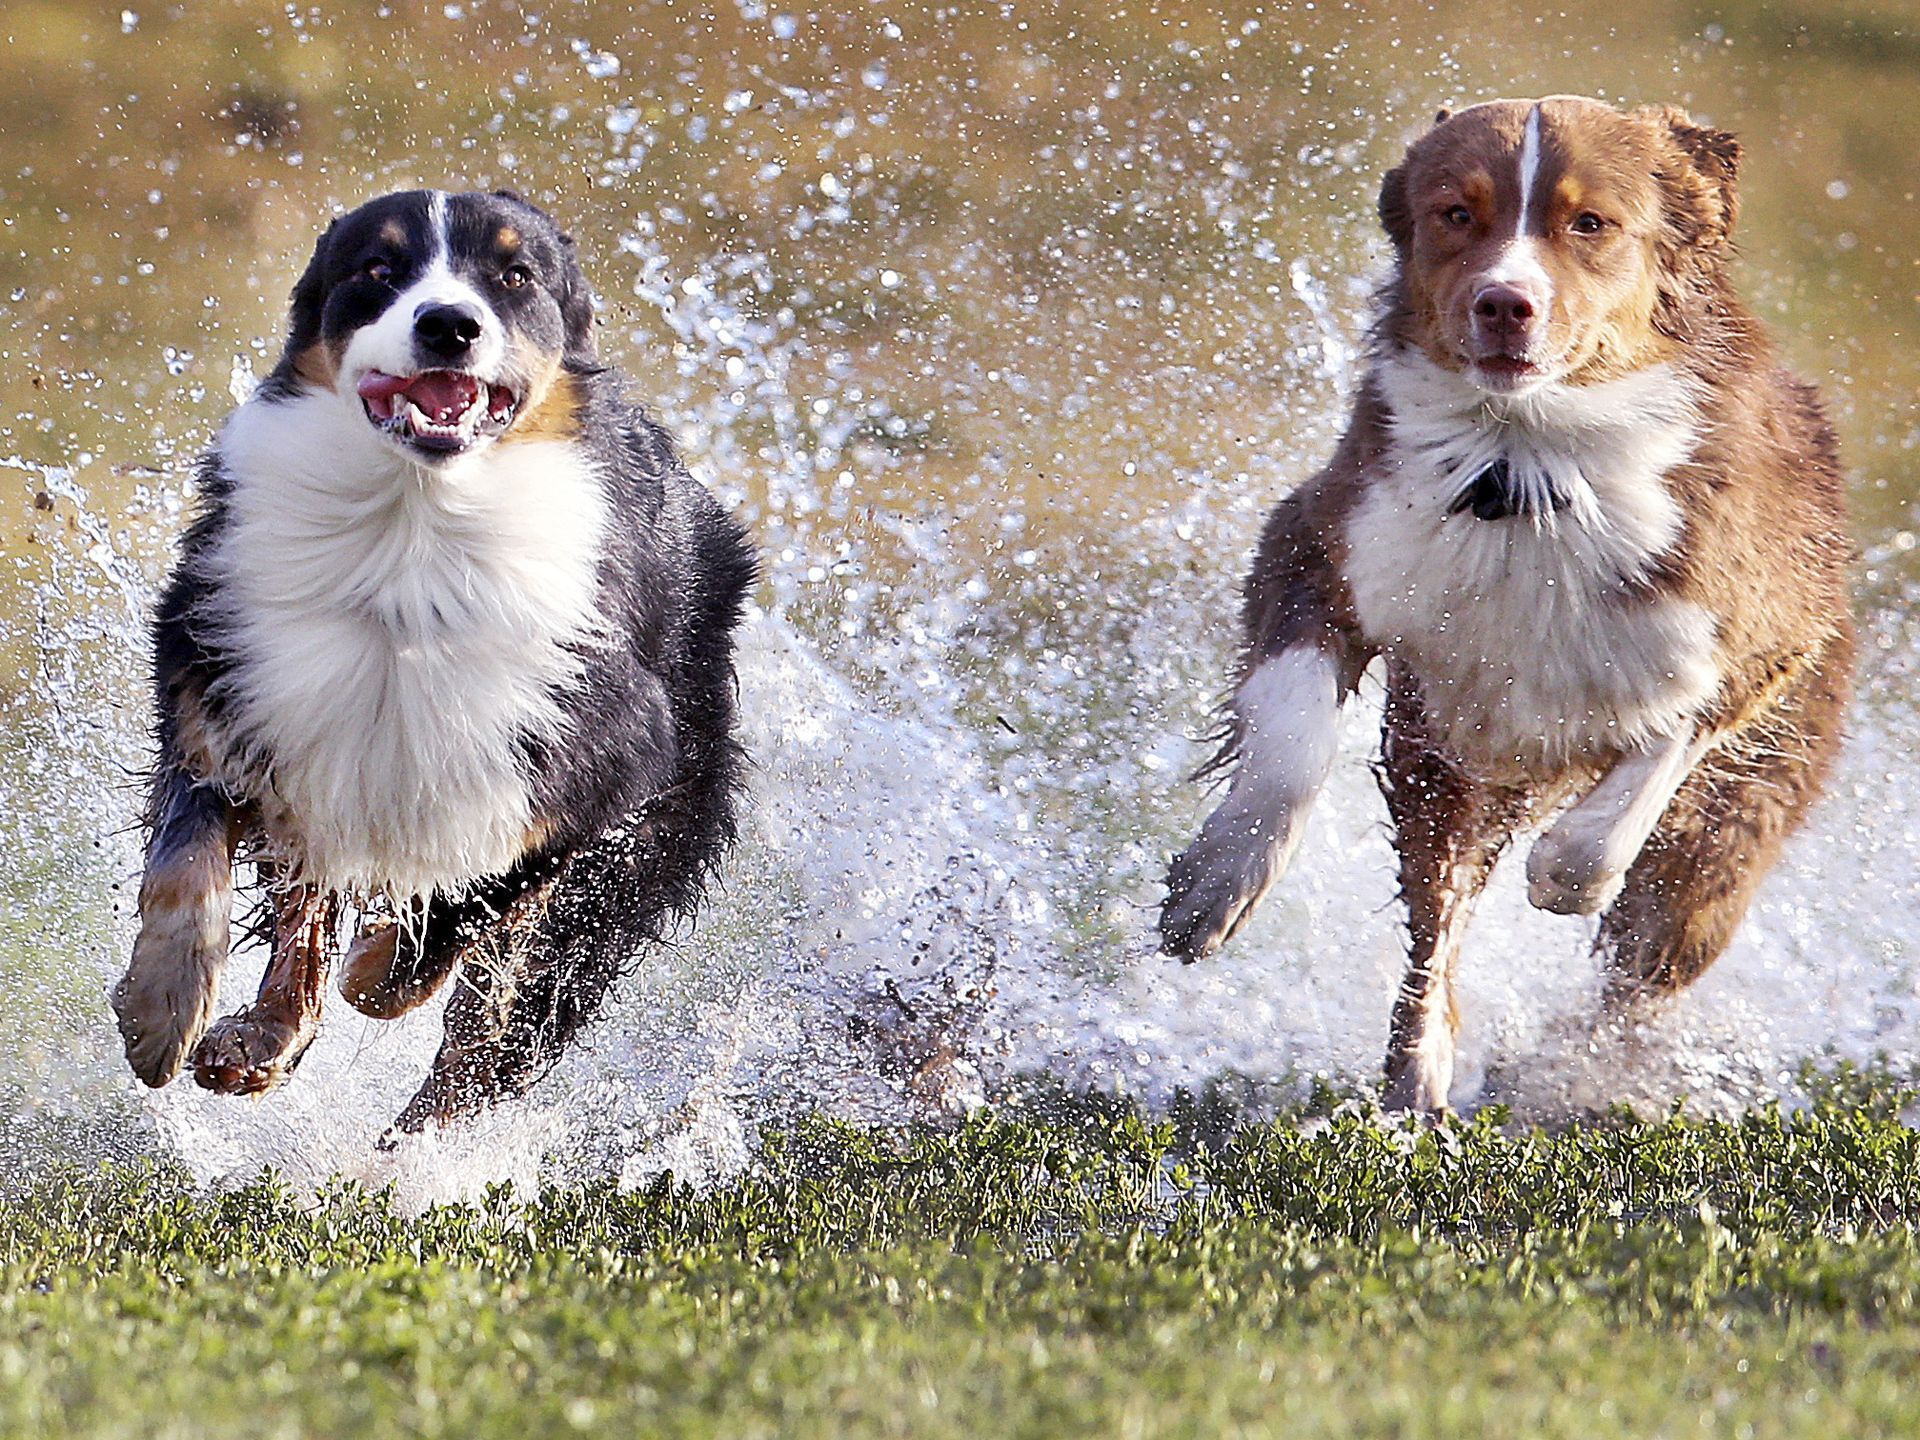 The Day In Pictures Australian Shepherd Dogs Australian